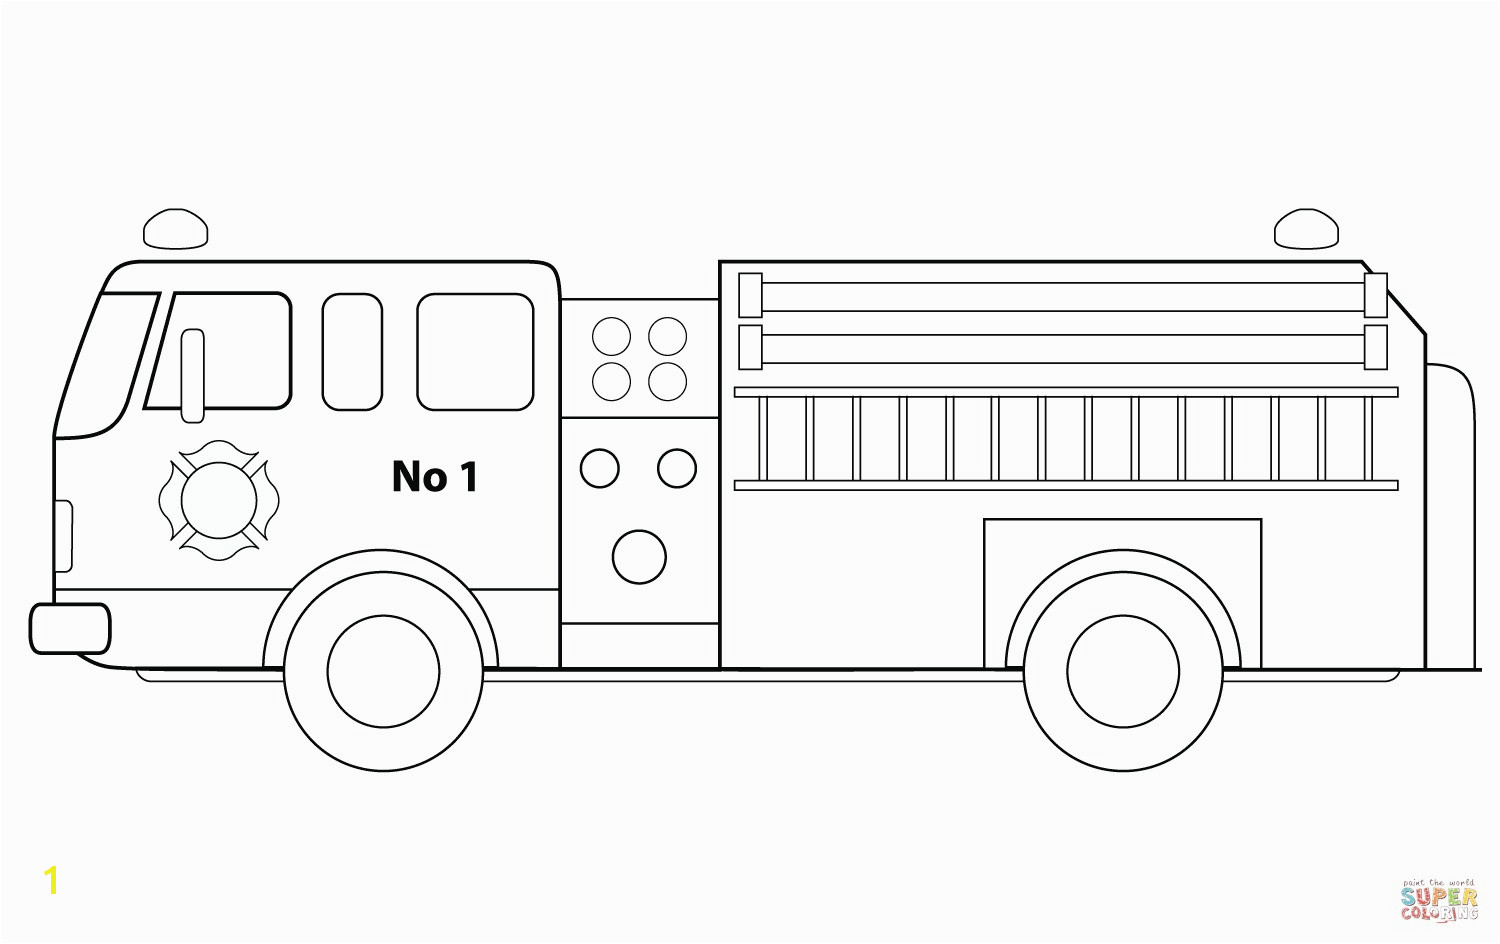 Fire Truck Coloring Pages Free Fire Truck Coloring Pages Printable Inspirational 24 Fire Truck Coloring